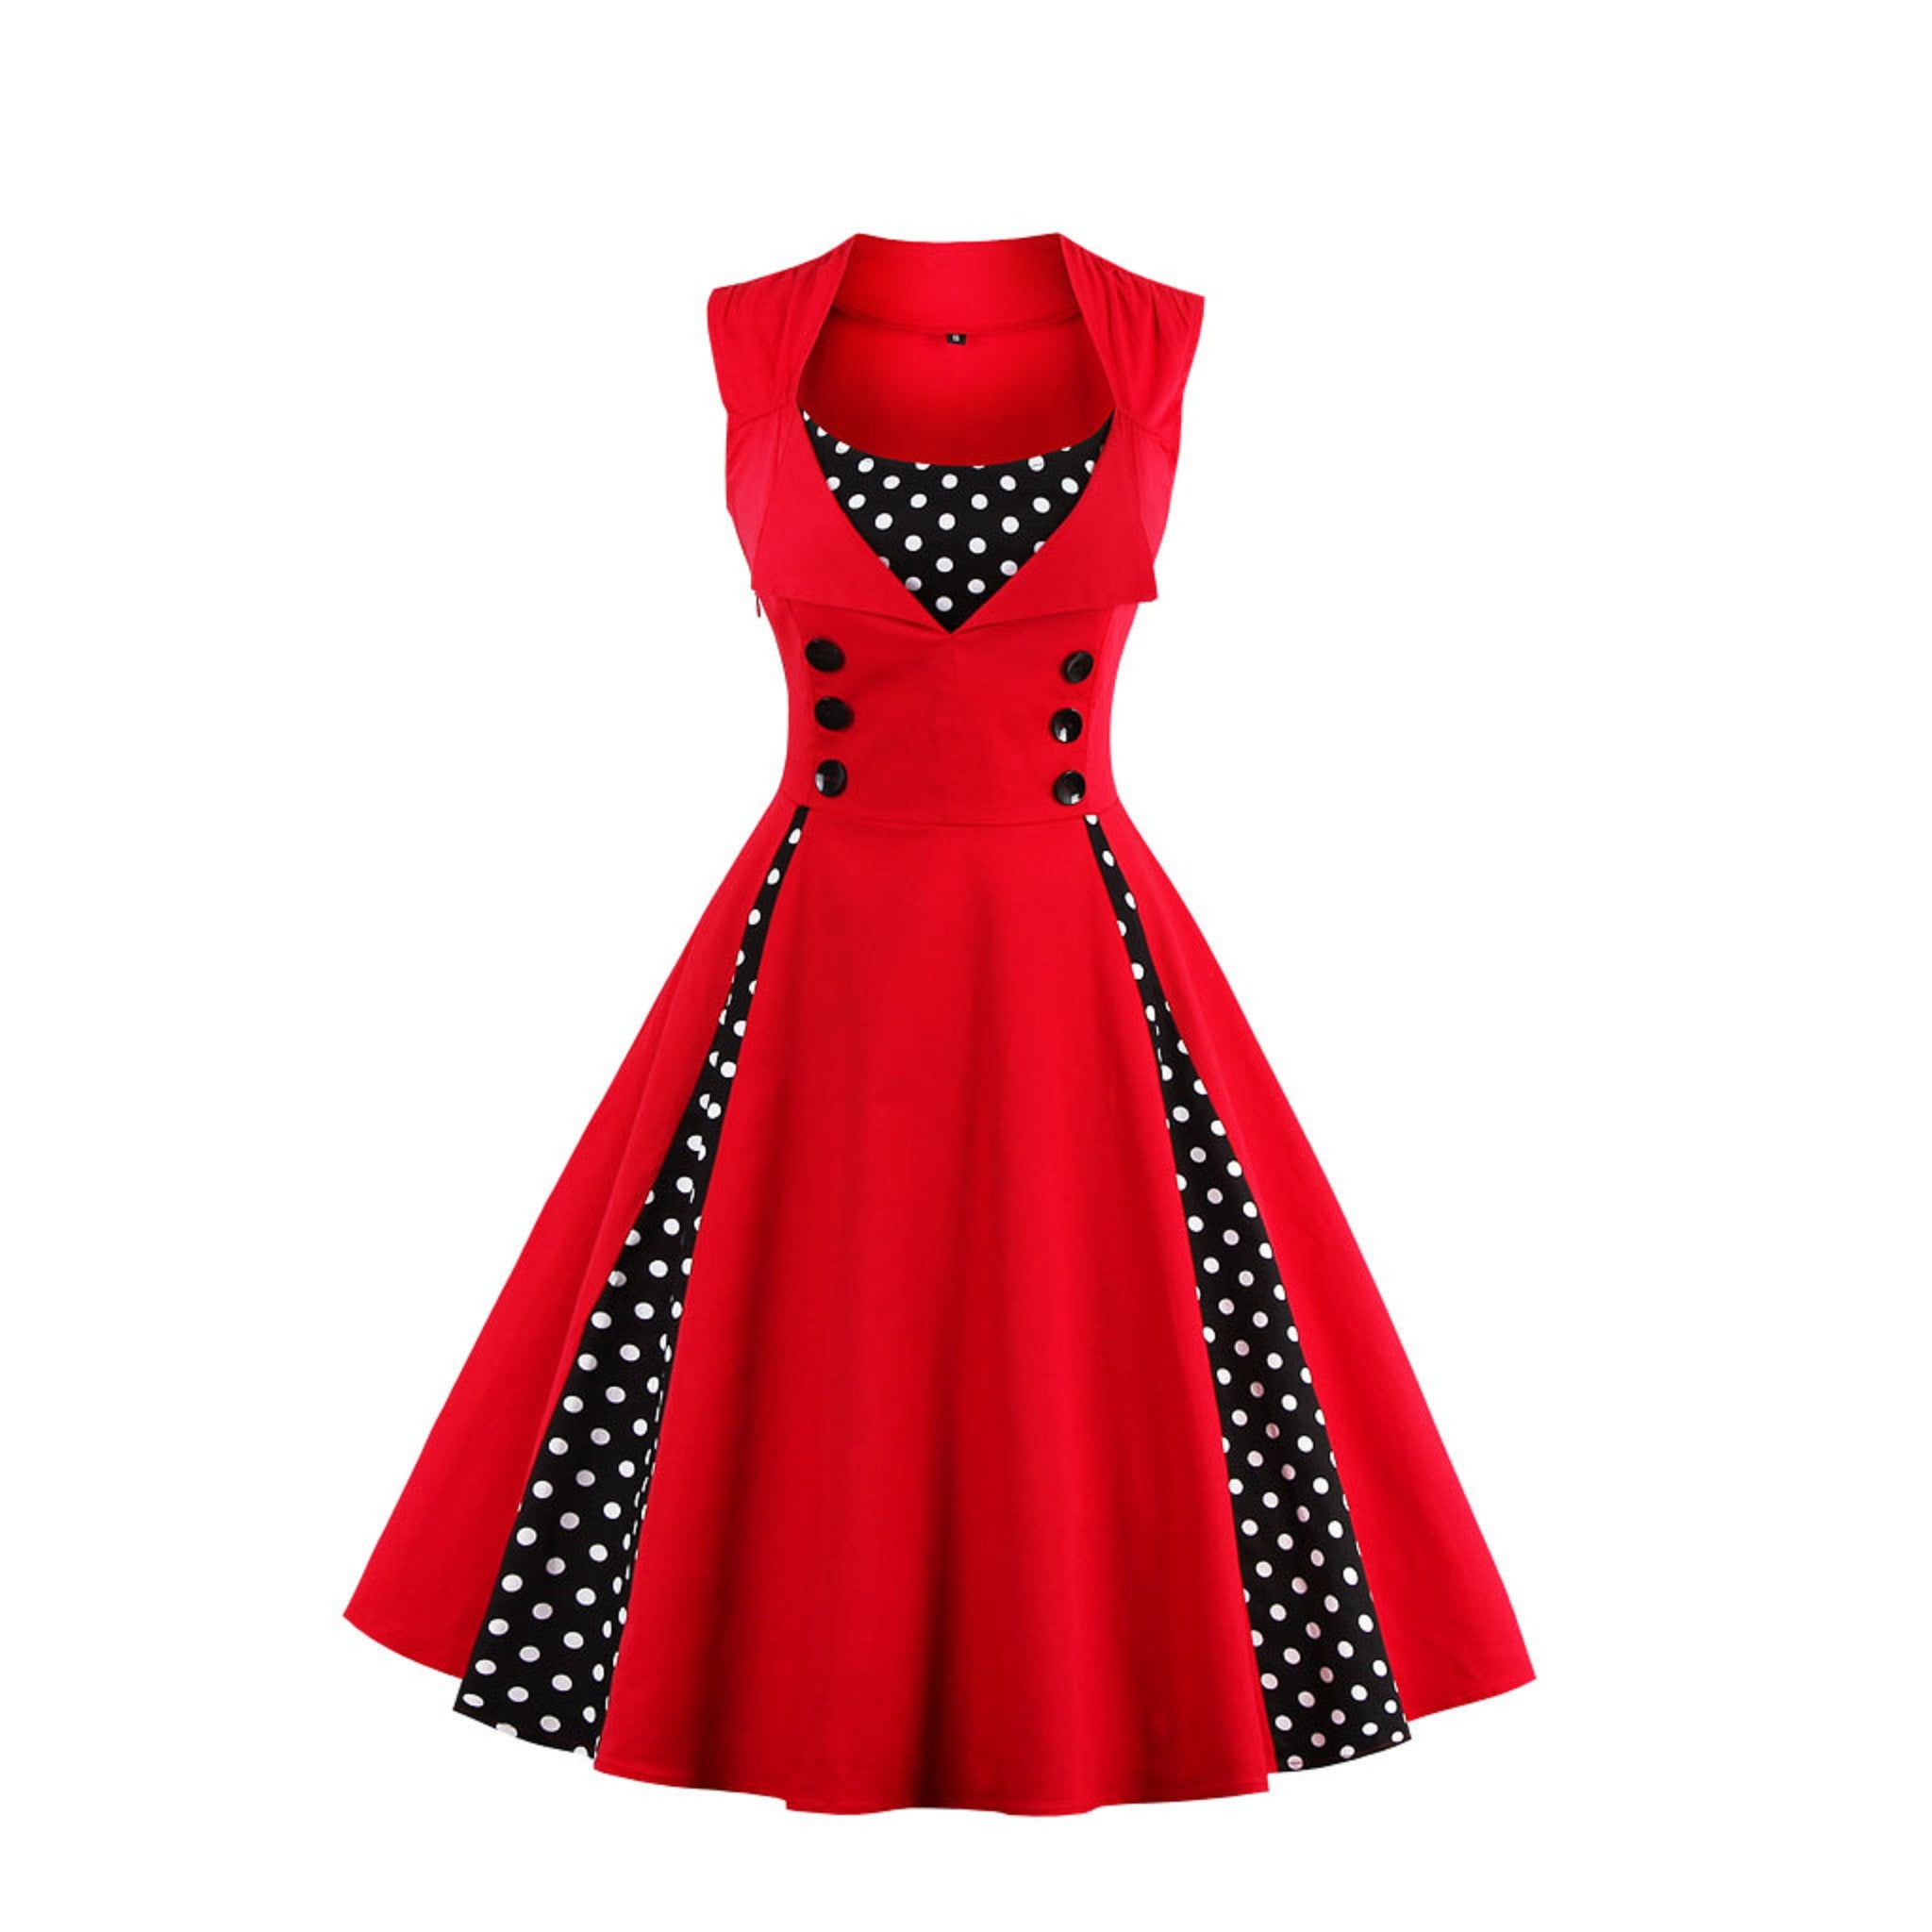 Summer Girls Sleeveless Evening Party Red Dresses Women Rockabilly Retro Dot Vintage Vest Dress